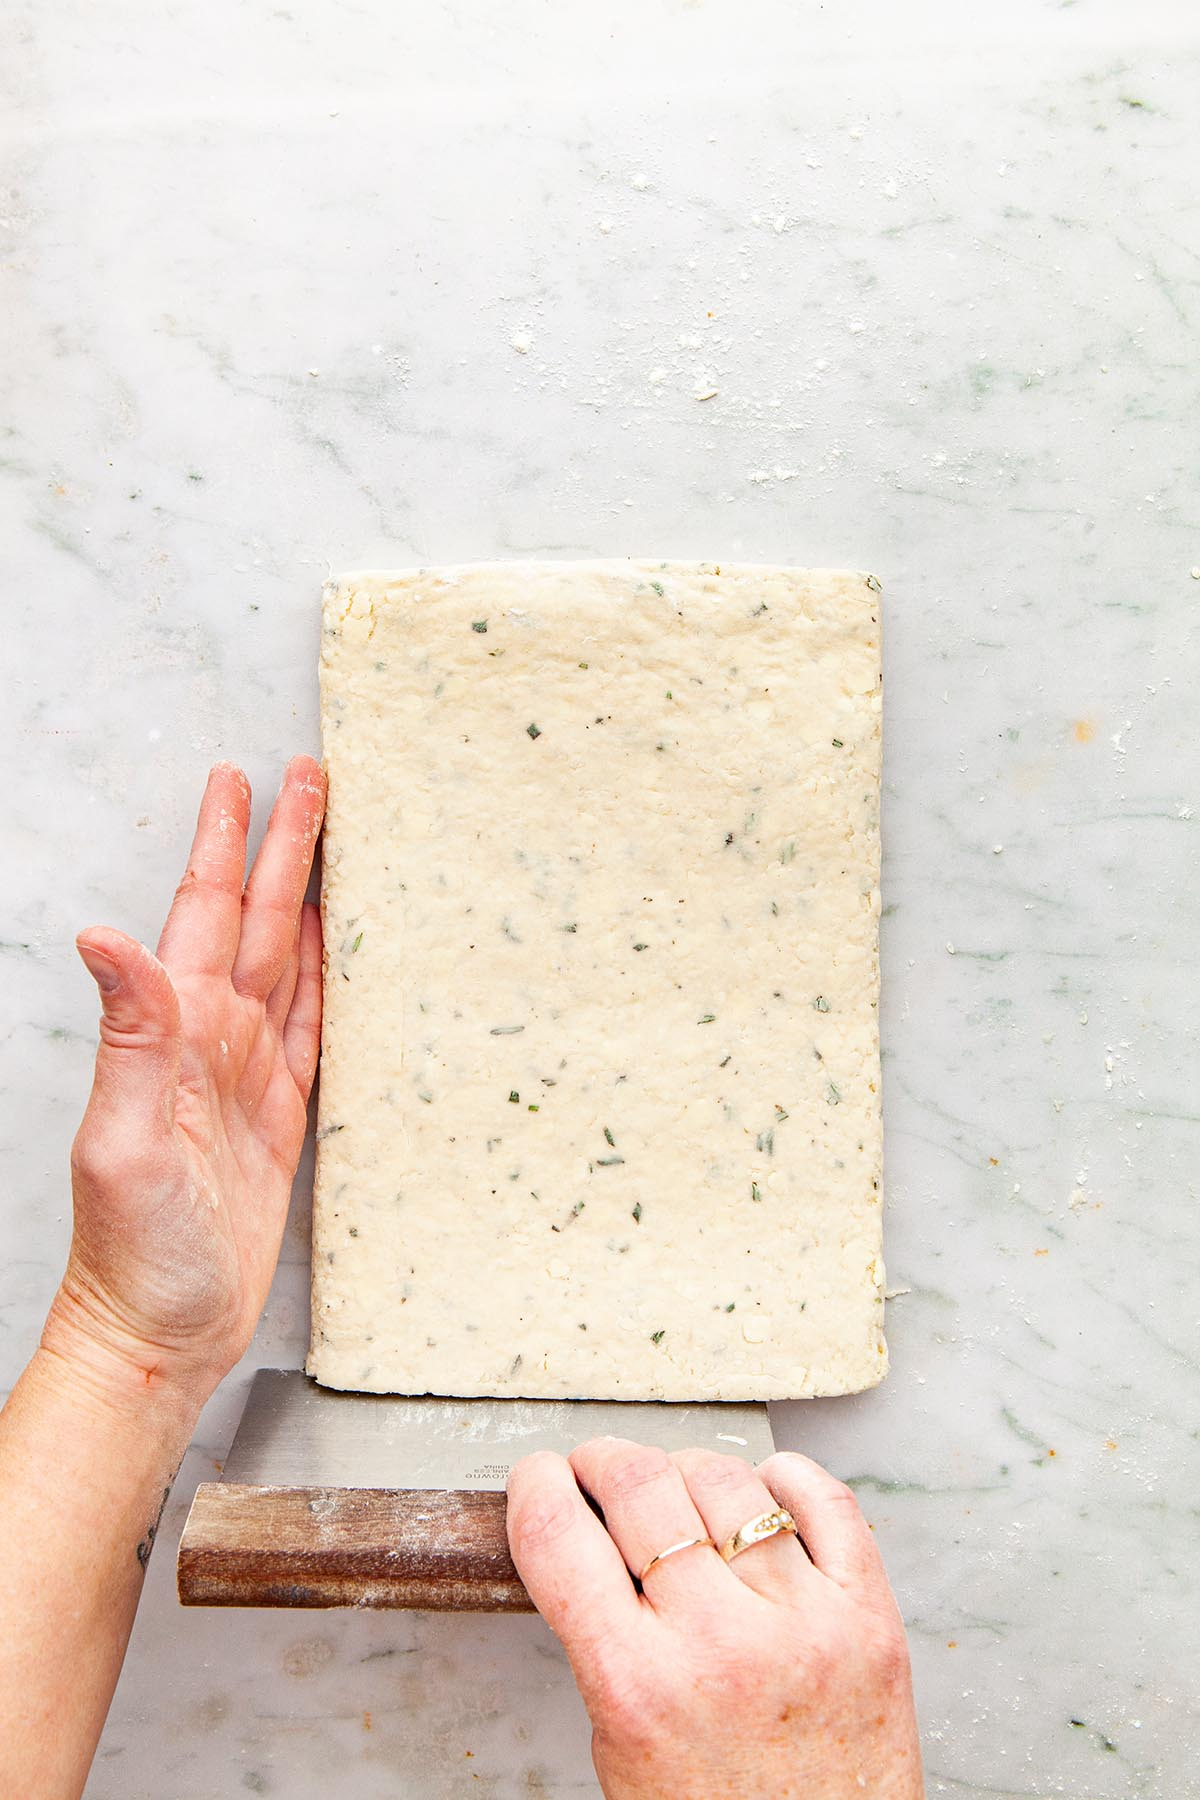 Hands smoothing the edge of rolled out dough with a bench scraper.